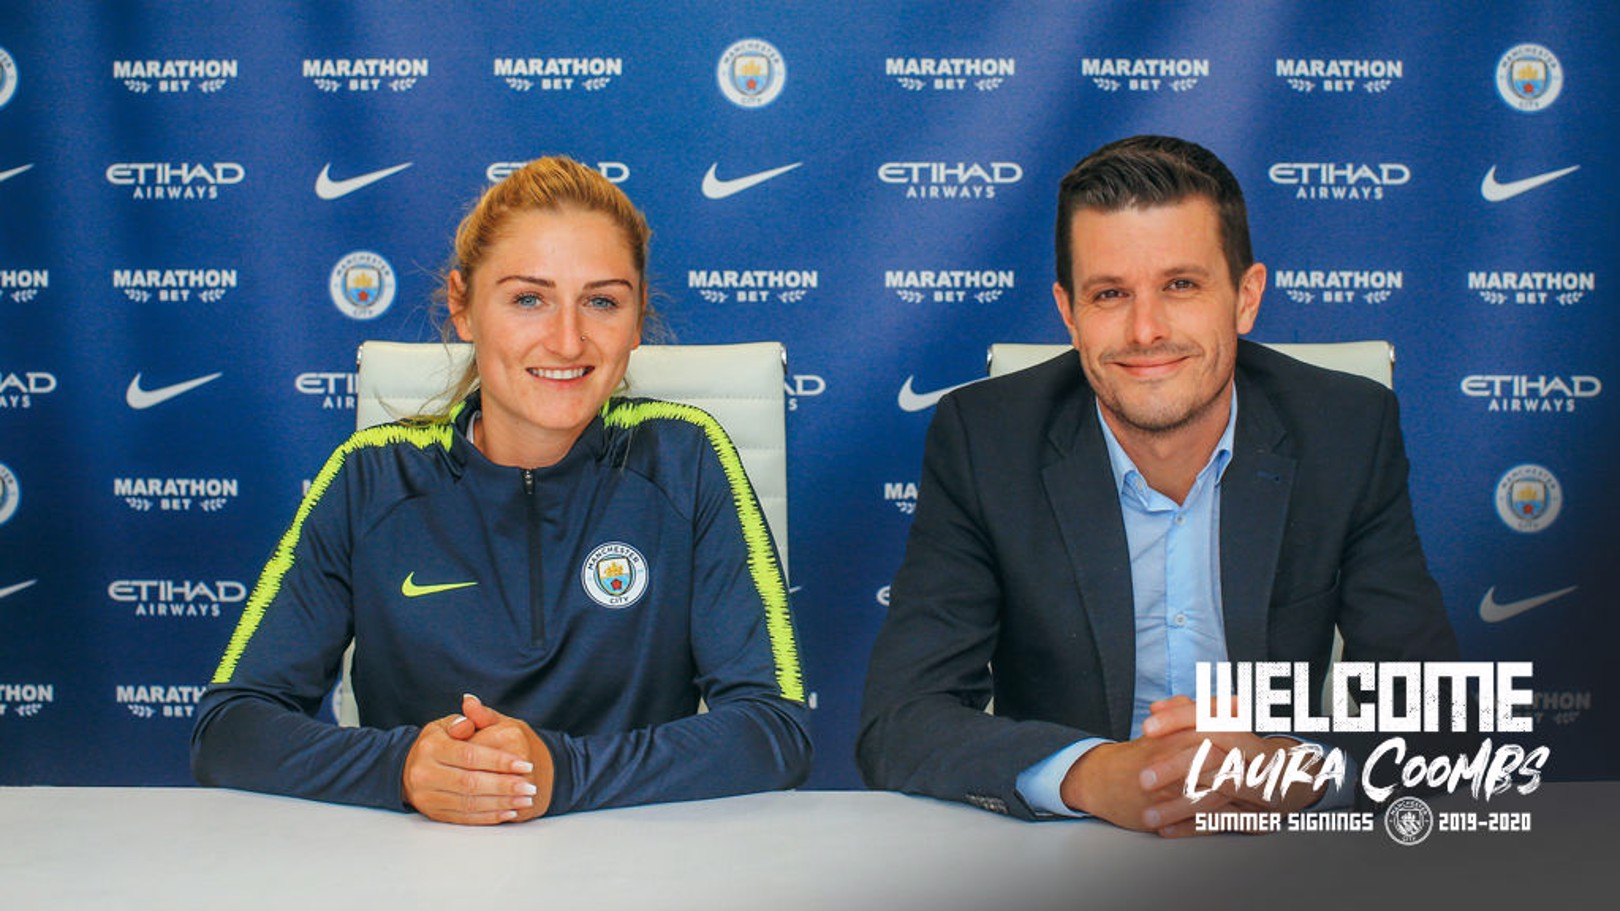 El City ficha a Laura Coombs